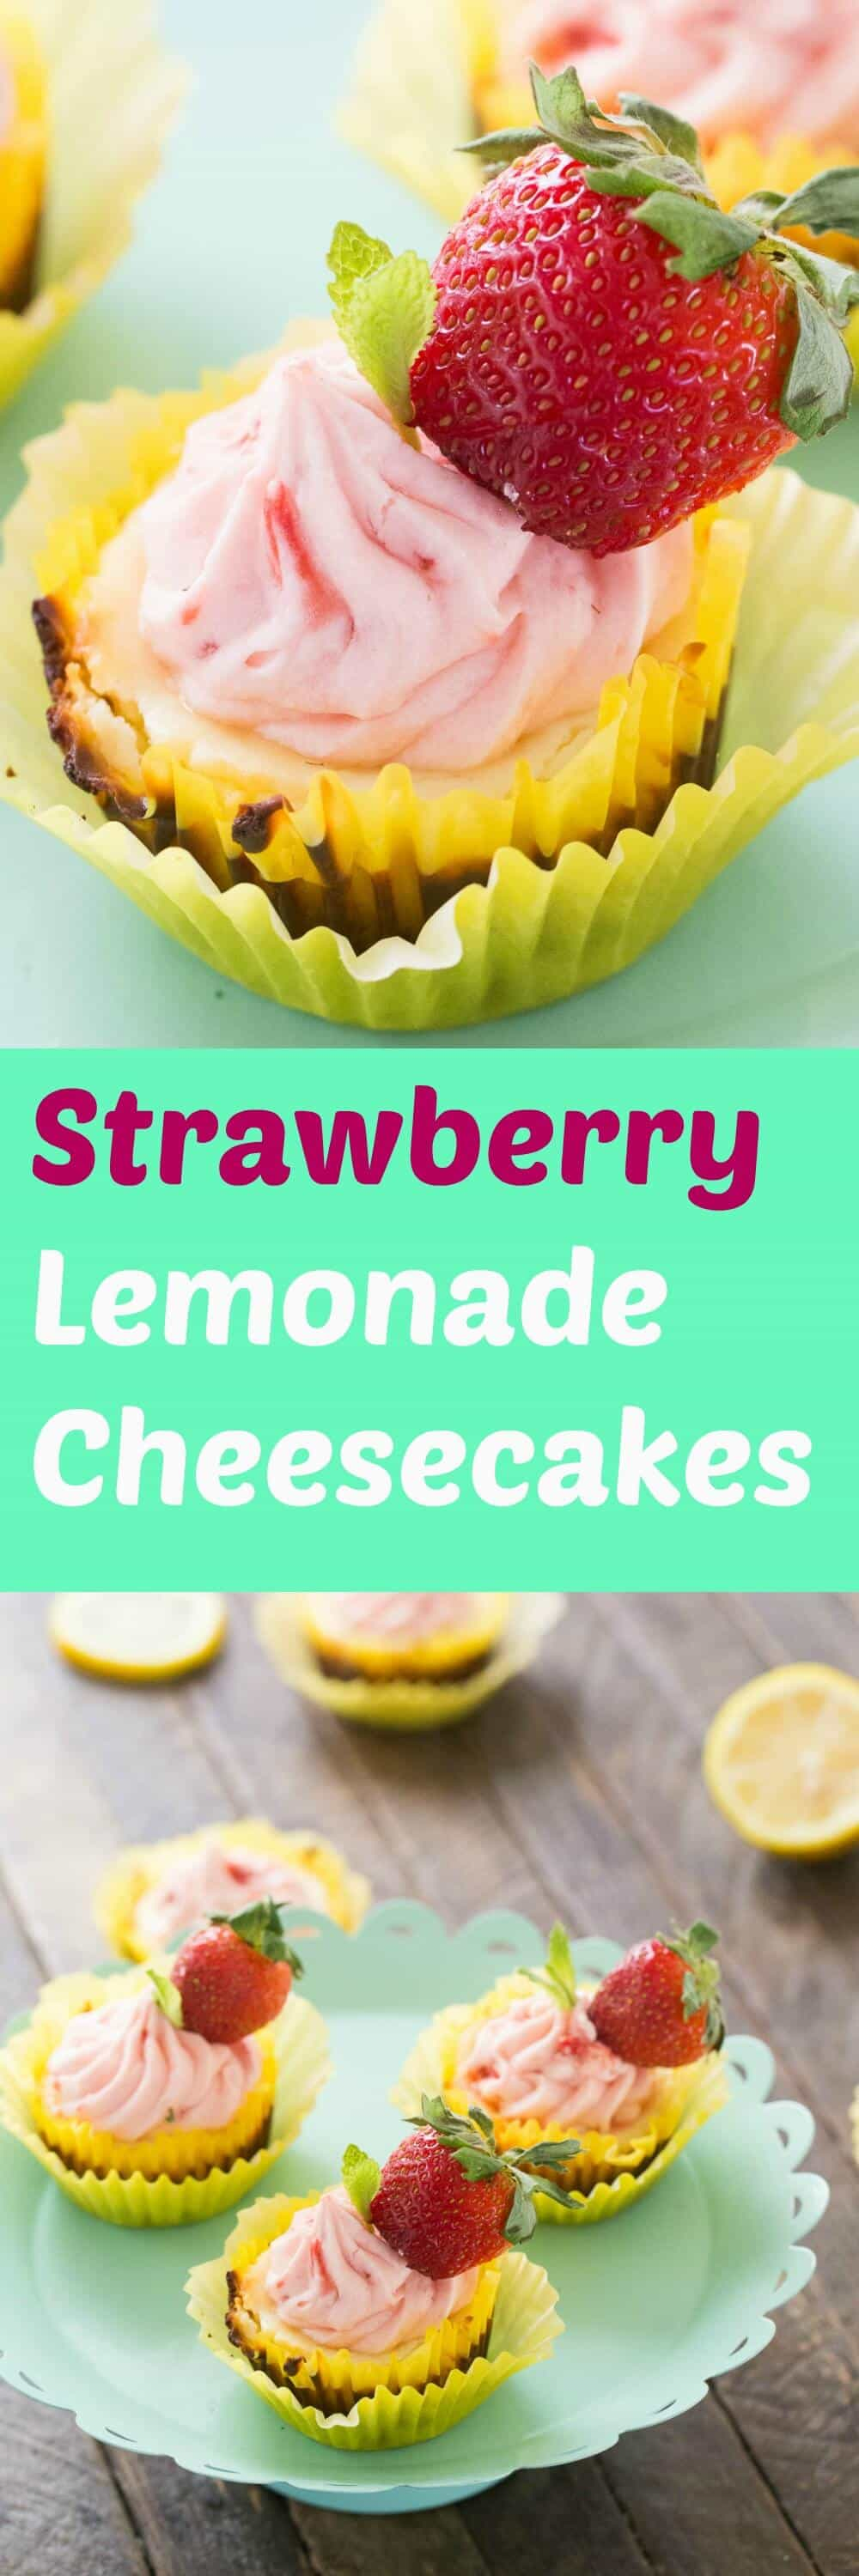 These strawberry lemonade cheesecakes burst with flavor! Each bite is lusciously rich and creamy and shows off the tart and sweet ingredients hidden within!